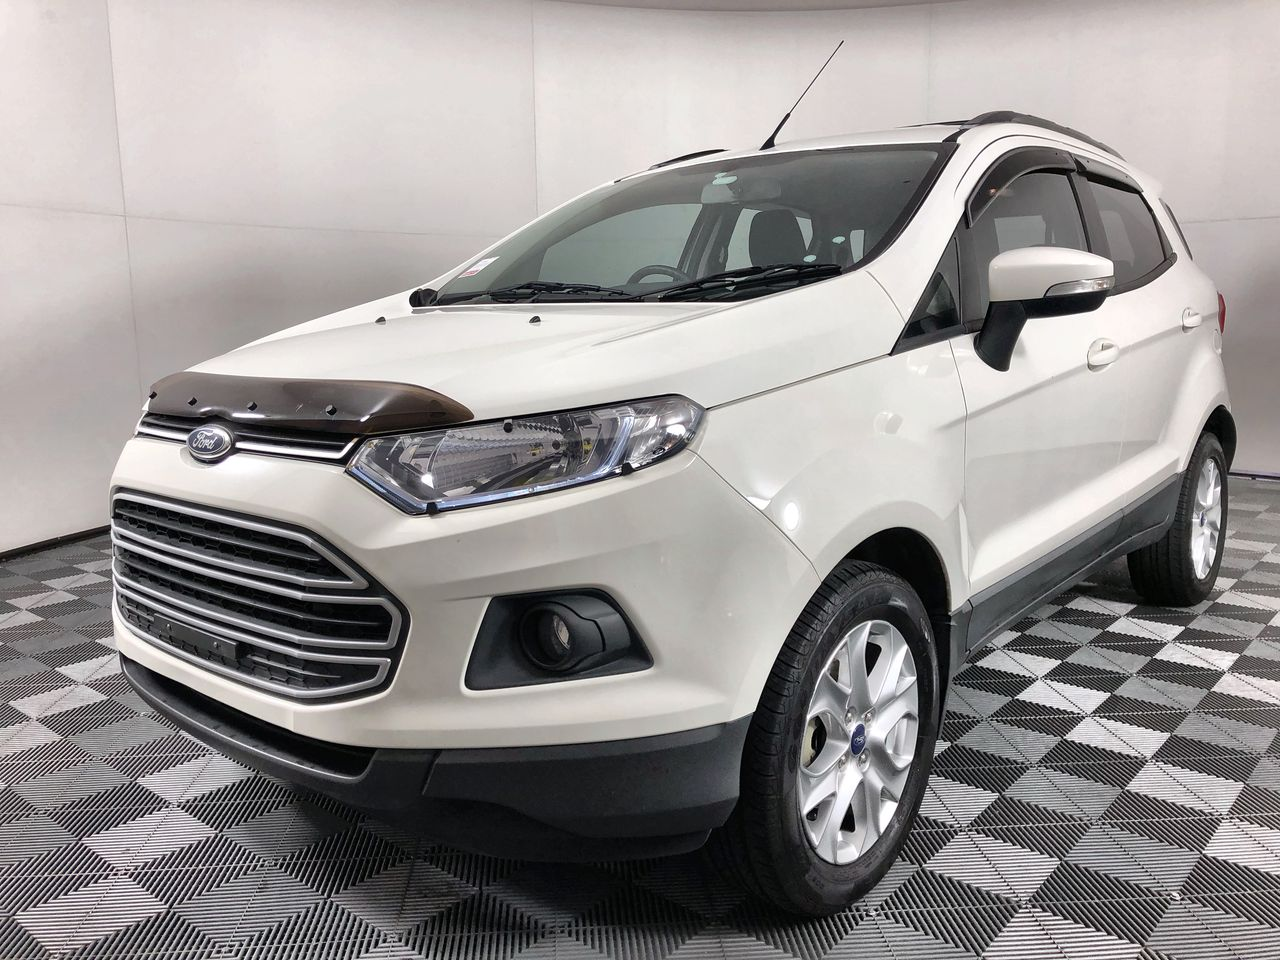 2015 Ford Ecosport Trend BK Automatic Wagon